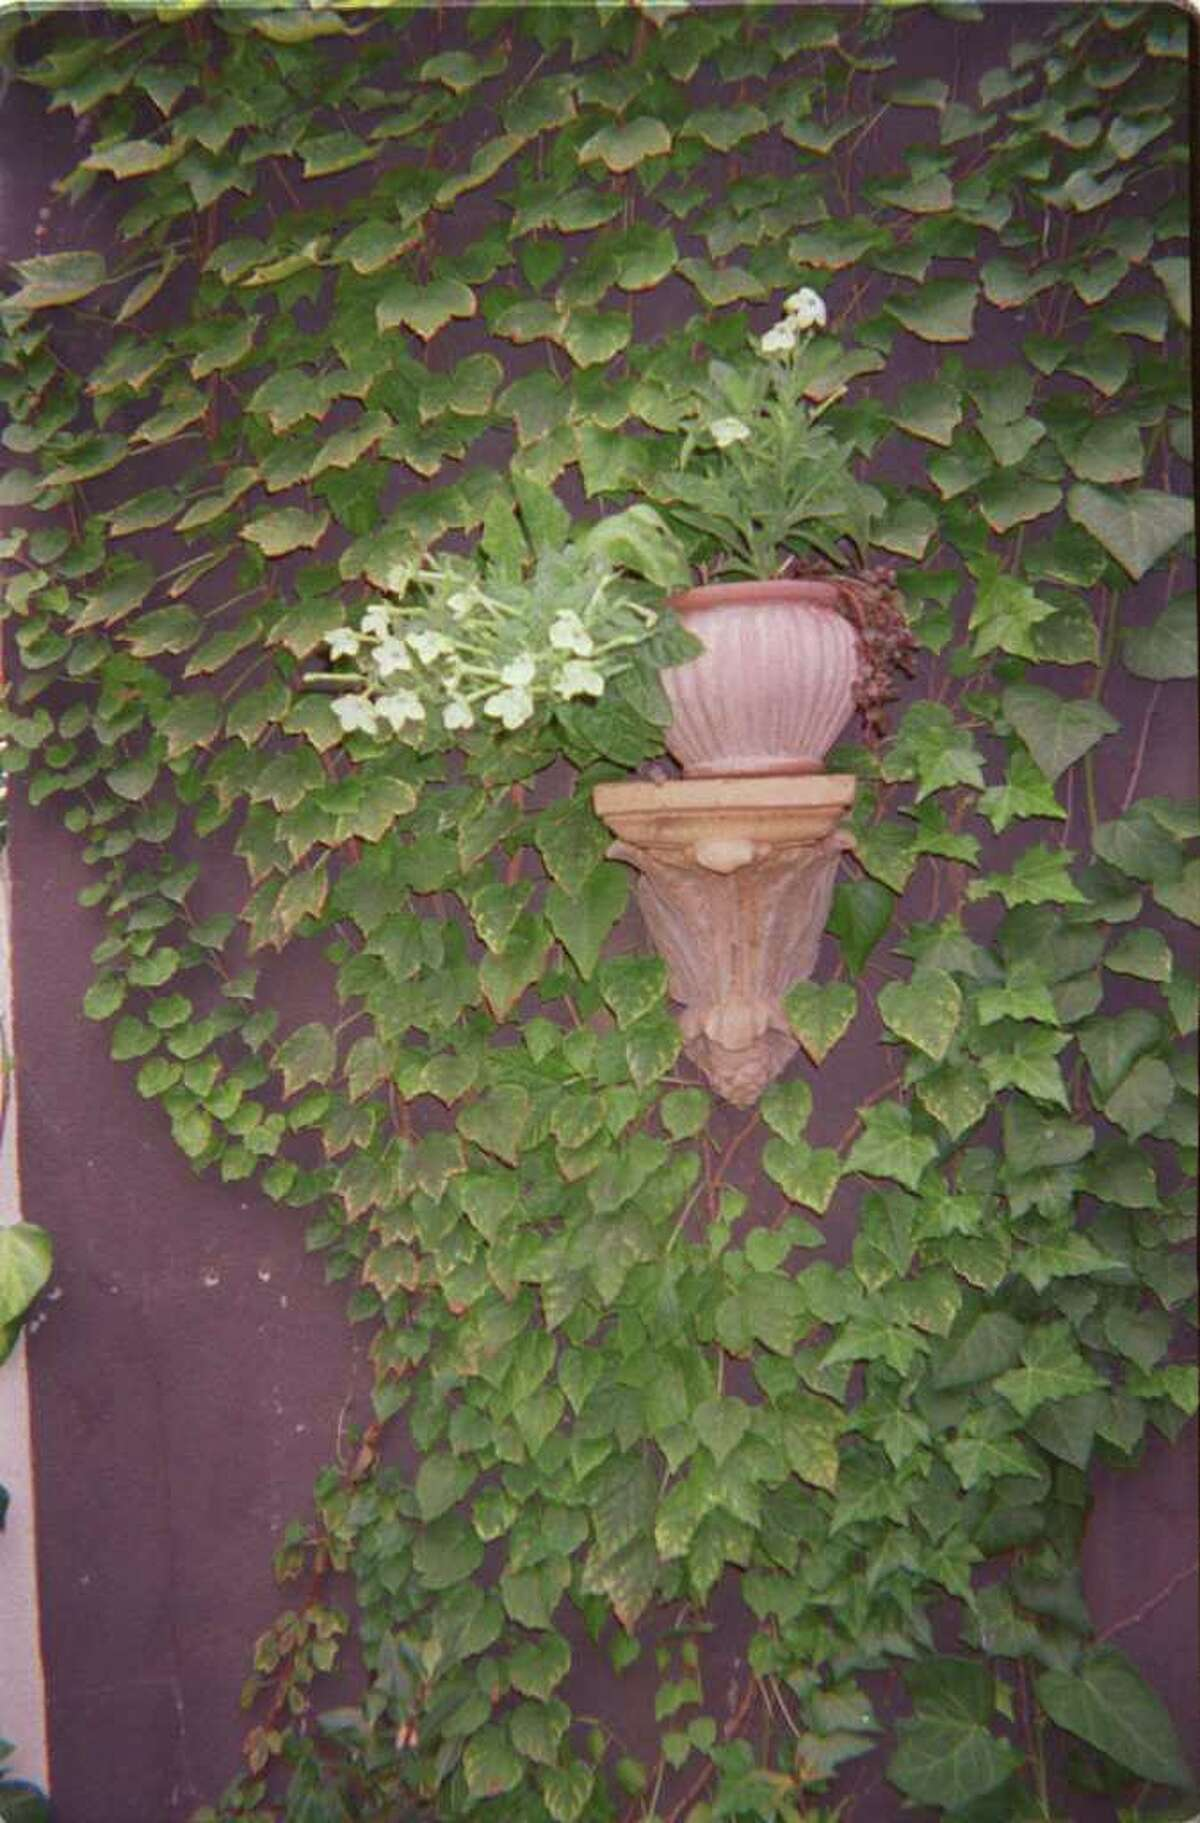 WALL PLANTING: When the only way is up, plant vines such as ivy to soften the walls of a small urban garden.